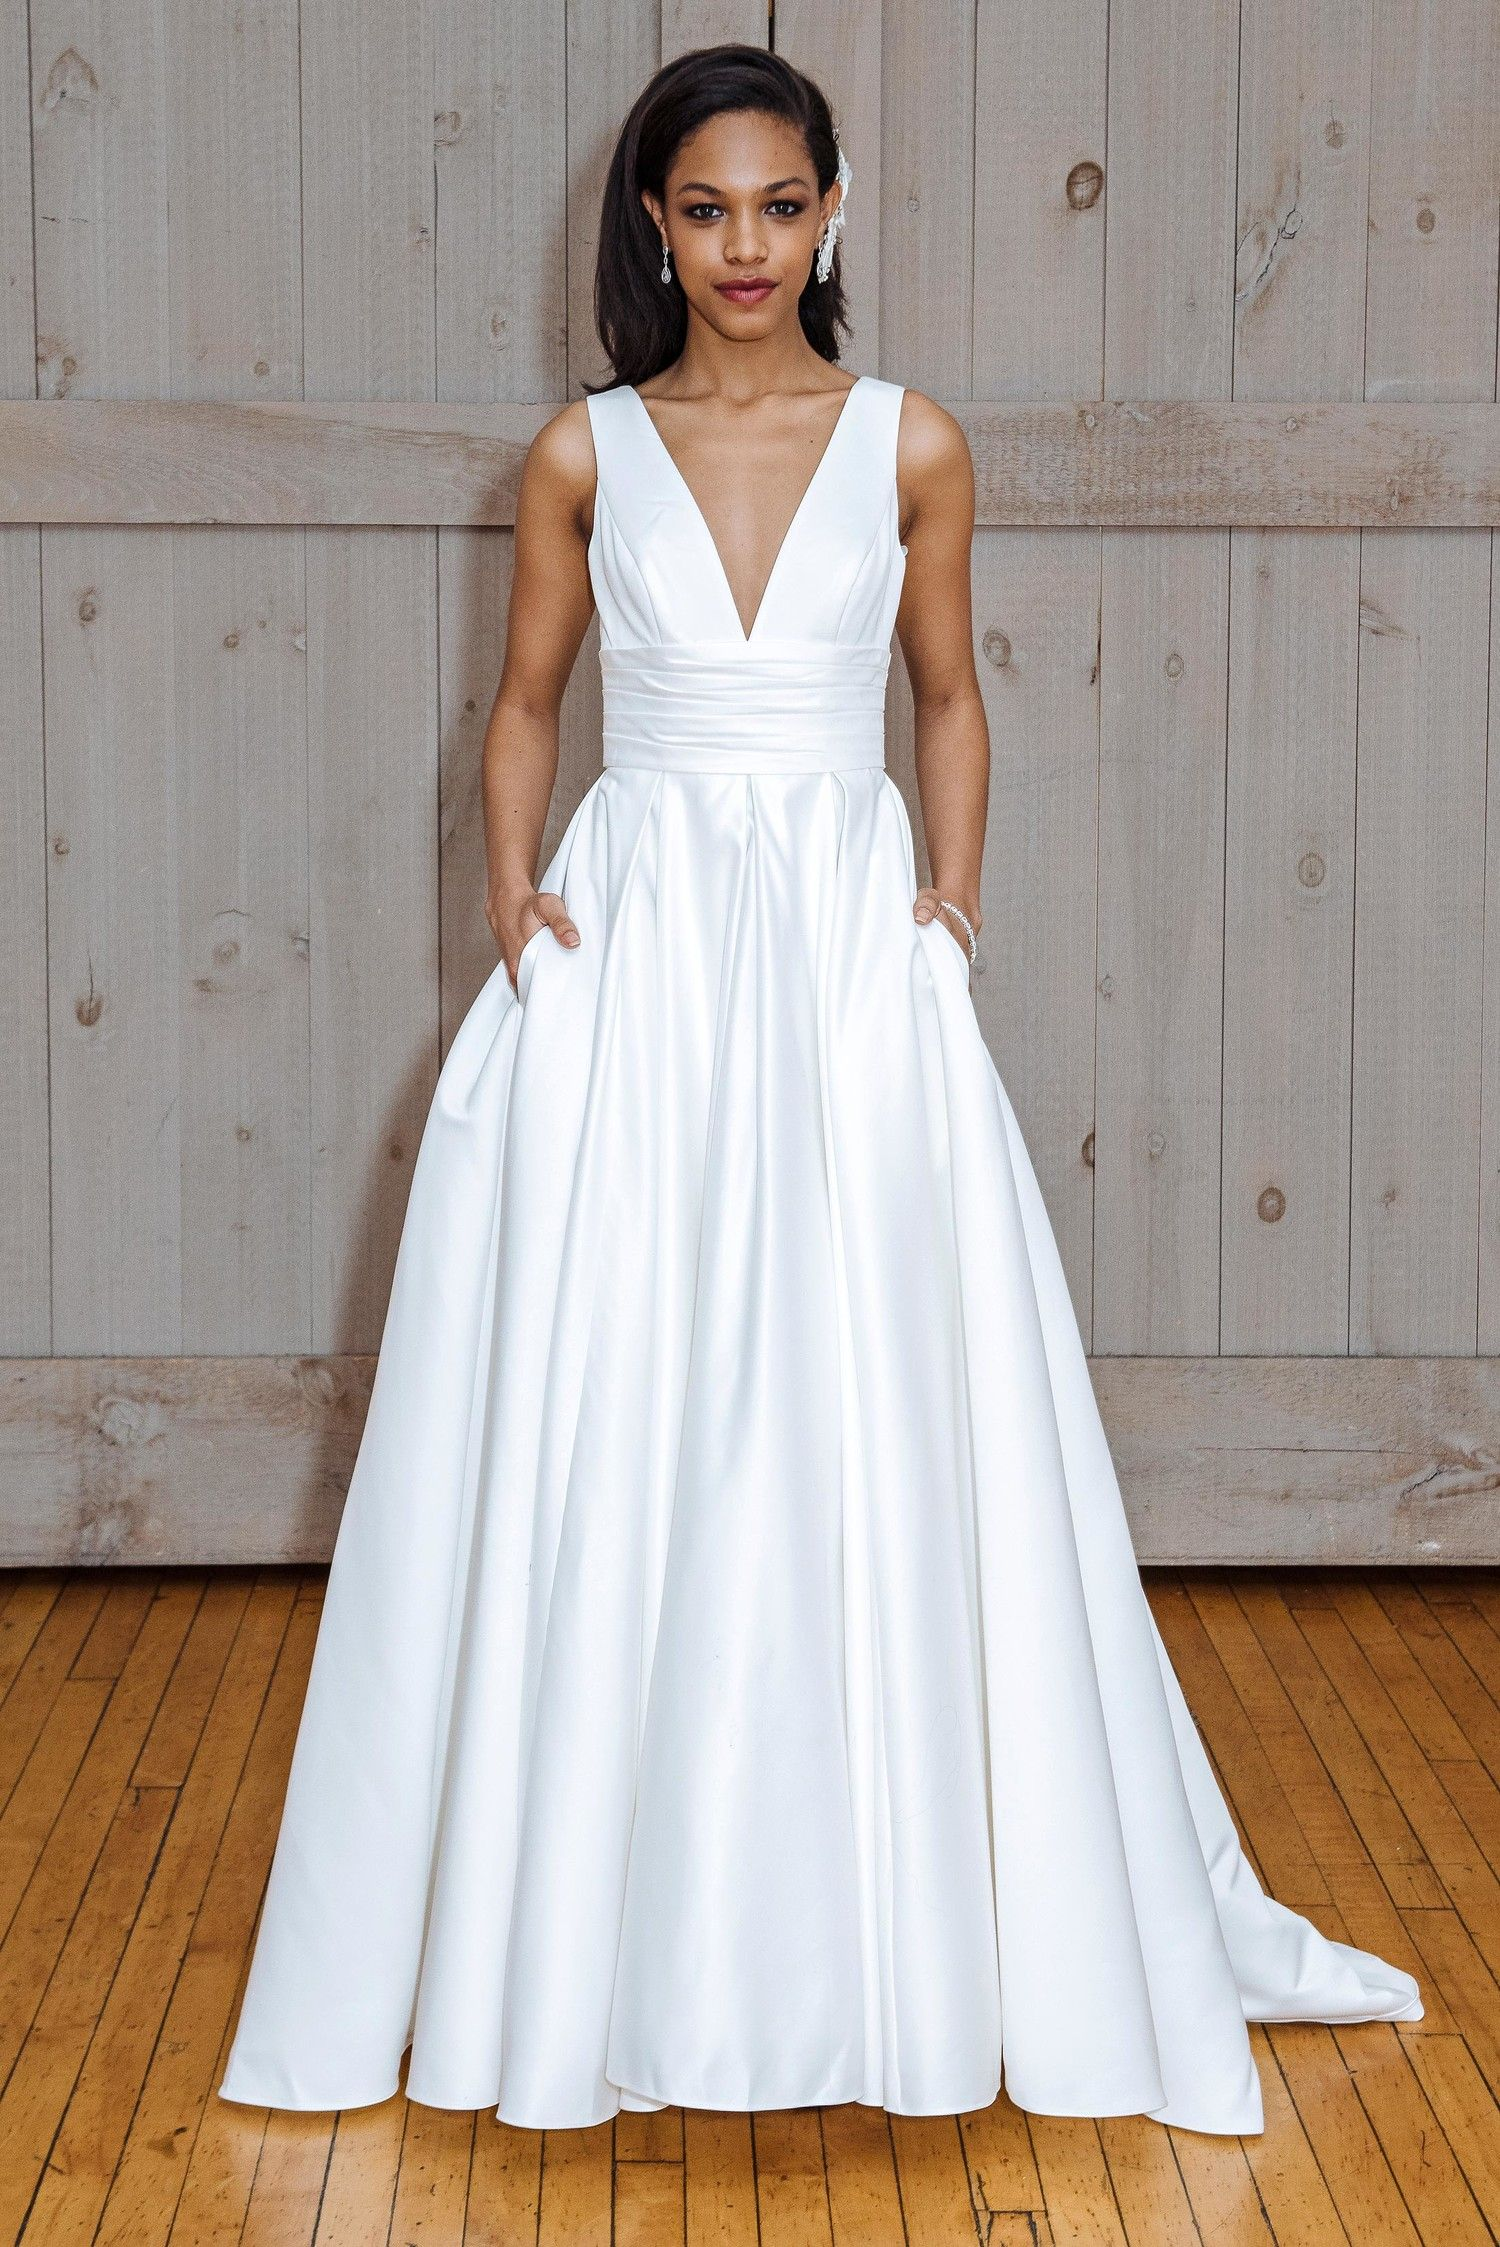 bf7fbe26f366f A-line wedding dress with V-neckline, wide straps, and pleated skirt